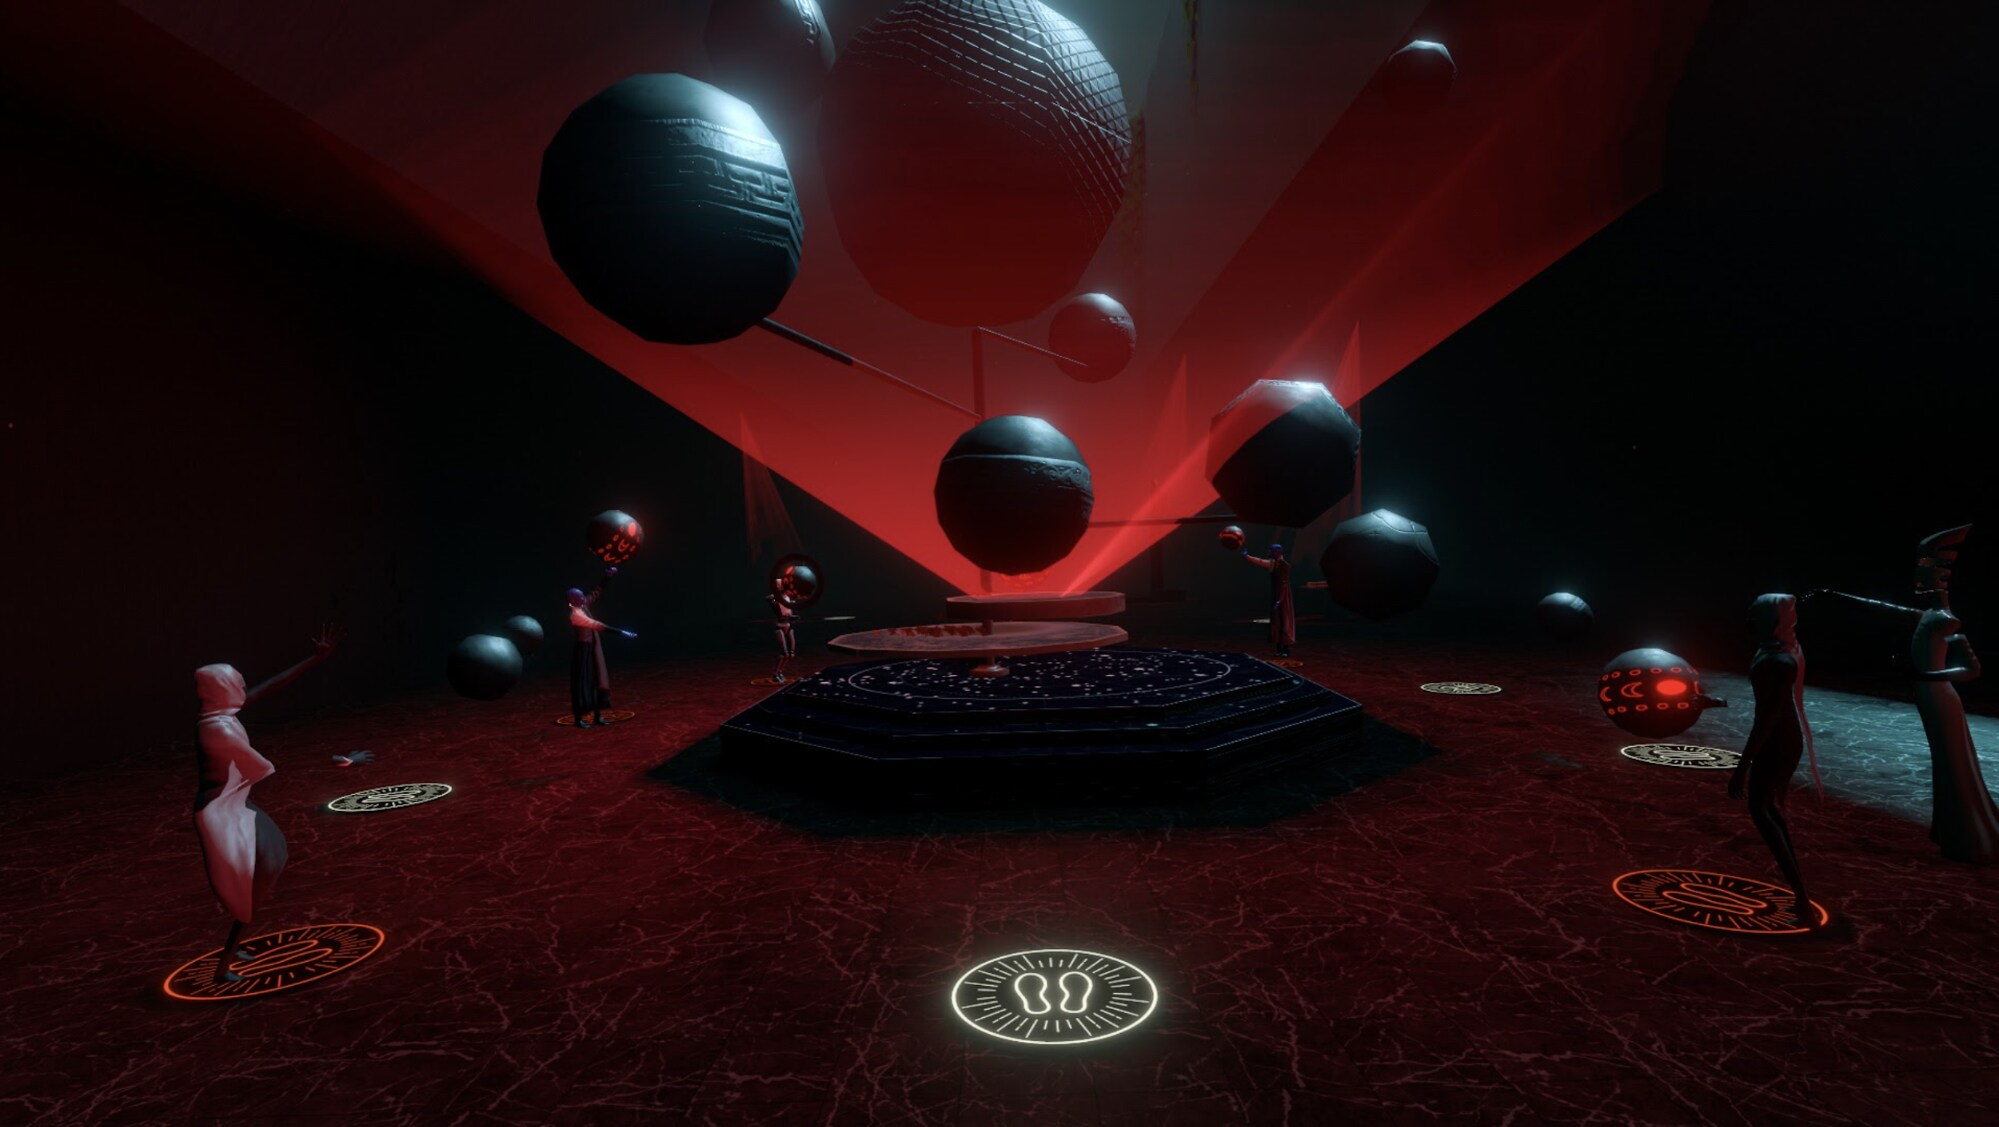 A group of people are standing in a circle in a red room around nine or ten hovering planets on the floor there are lit up foot markings. Everyone is wearing hooded robes.